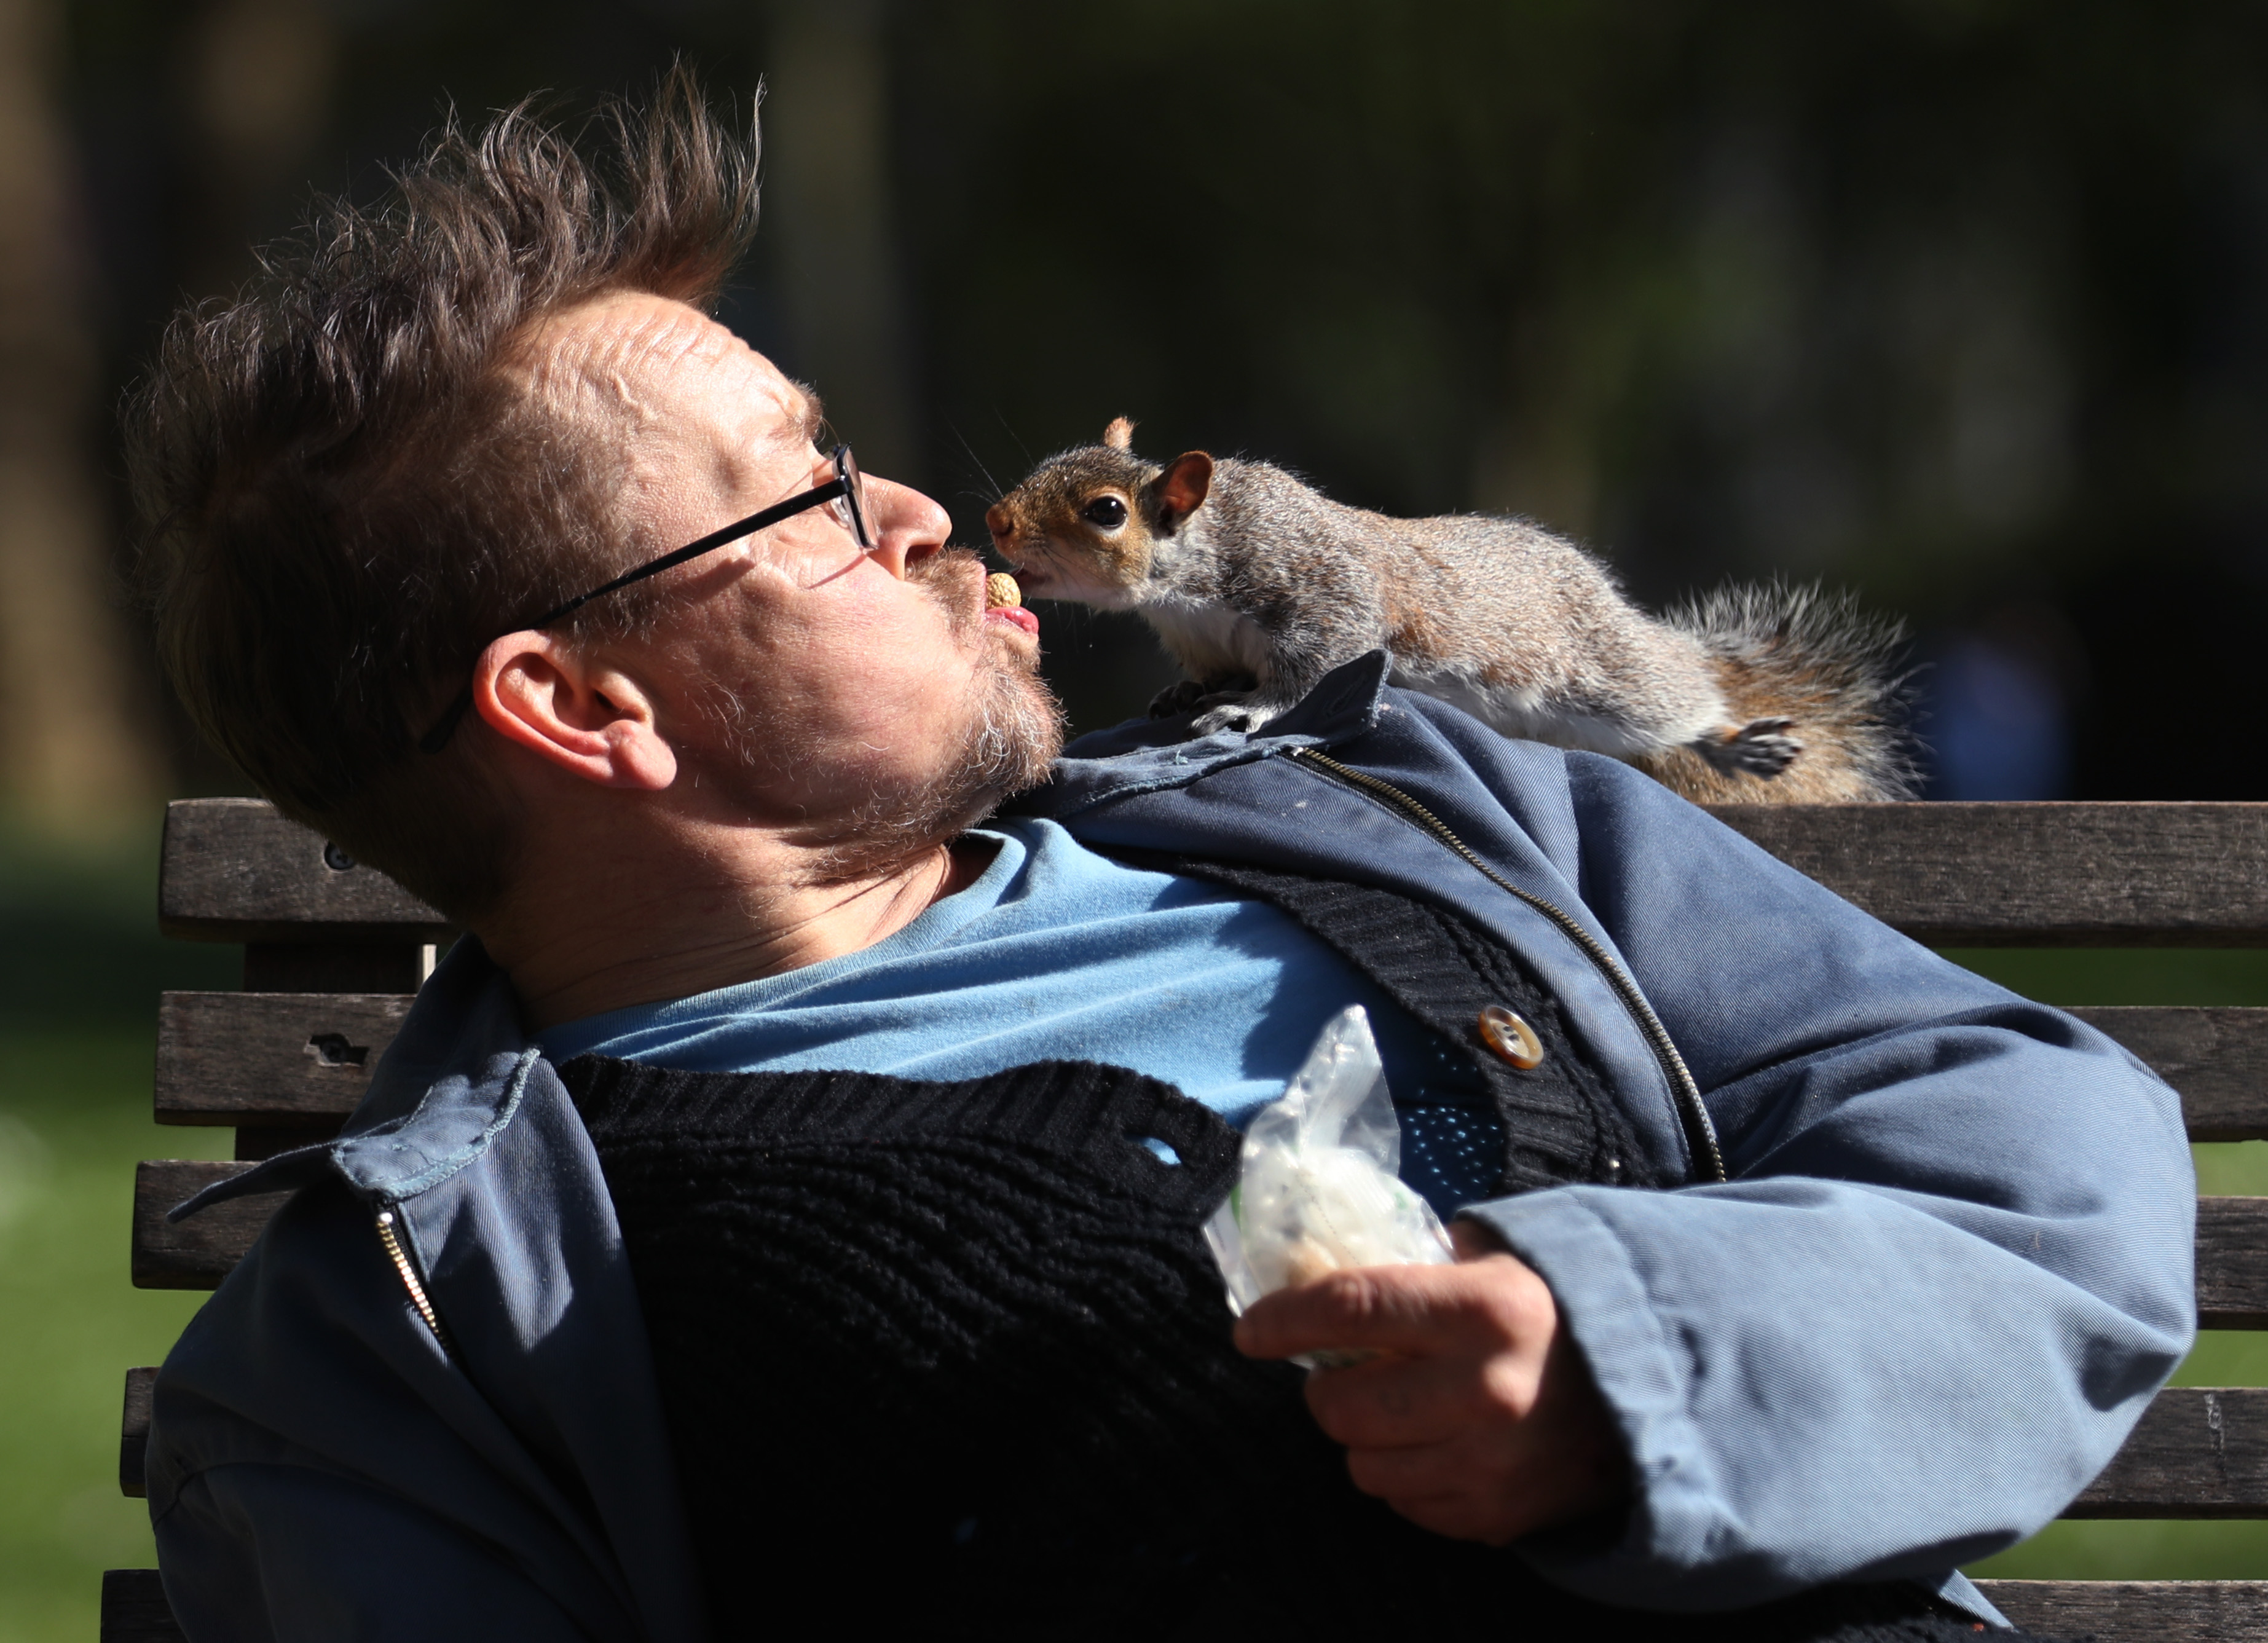 Bobby (no surname given) feeding a peanut to a squirrel in St James's Park, London, as the UK continues in lockdown to help curb the spread of the coronavirus.